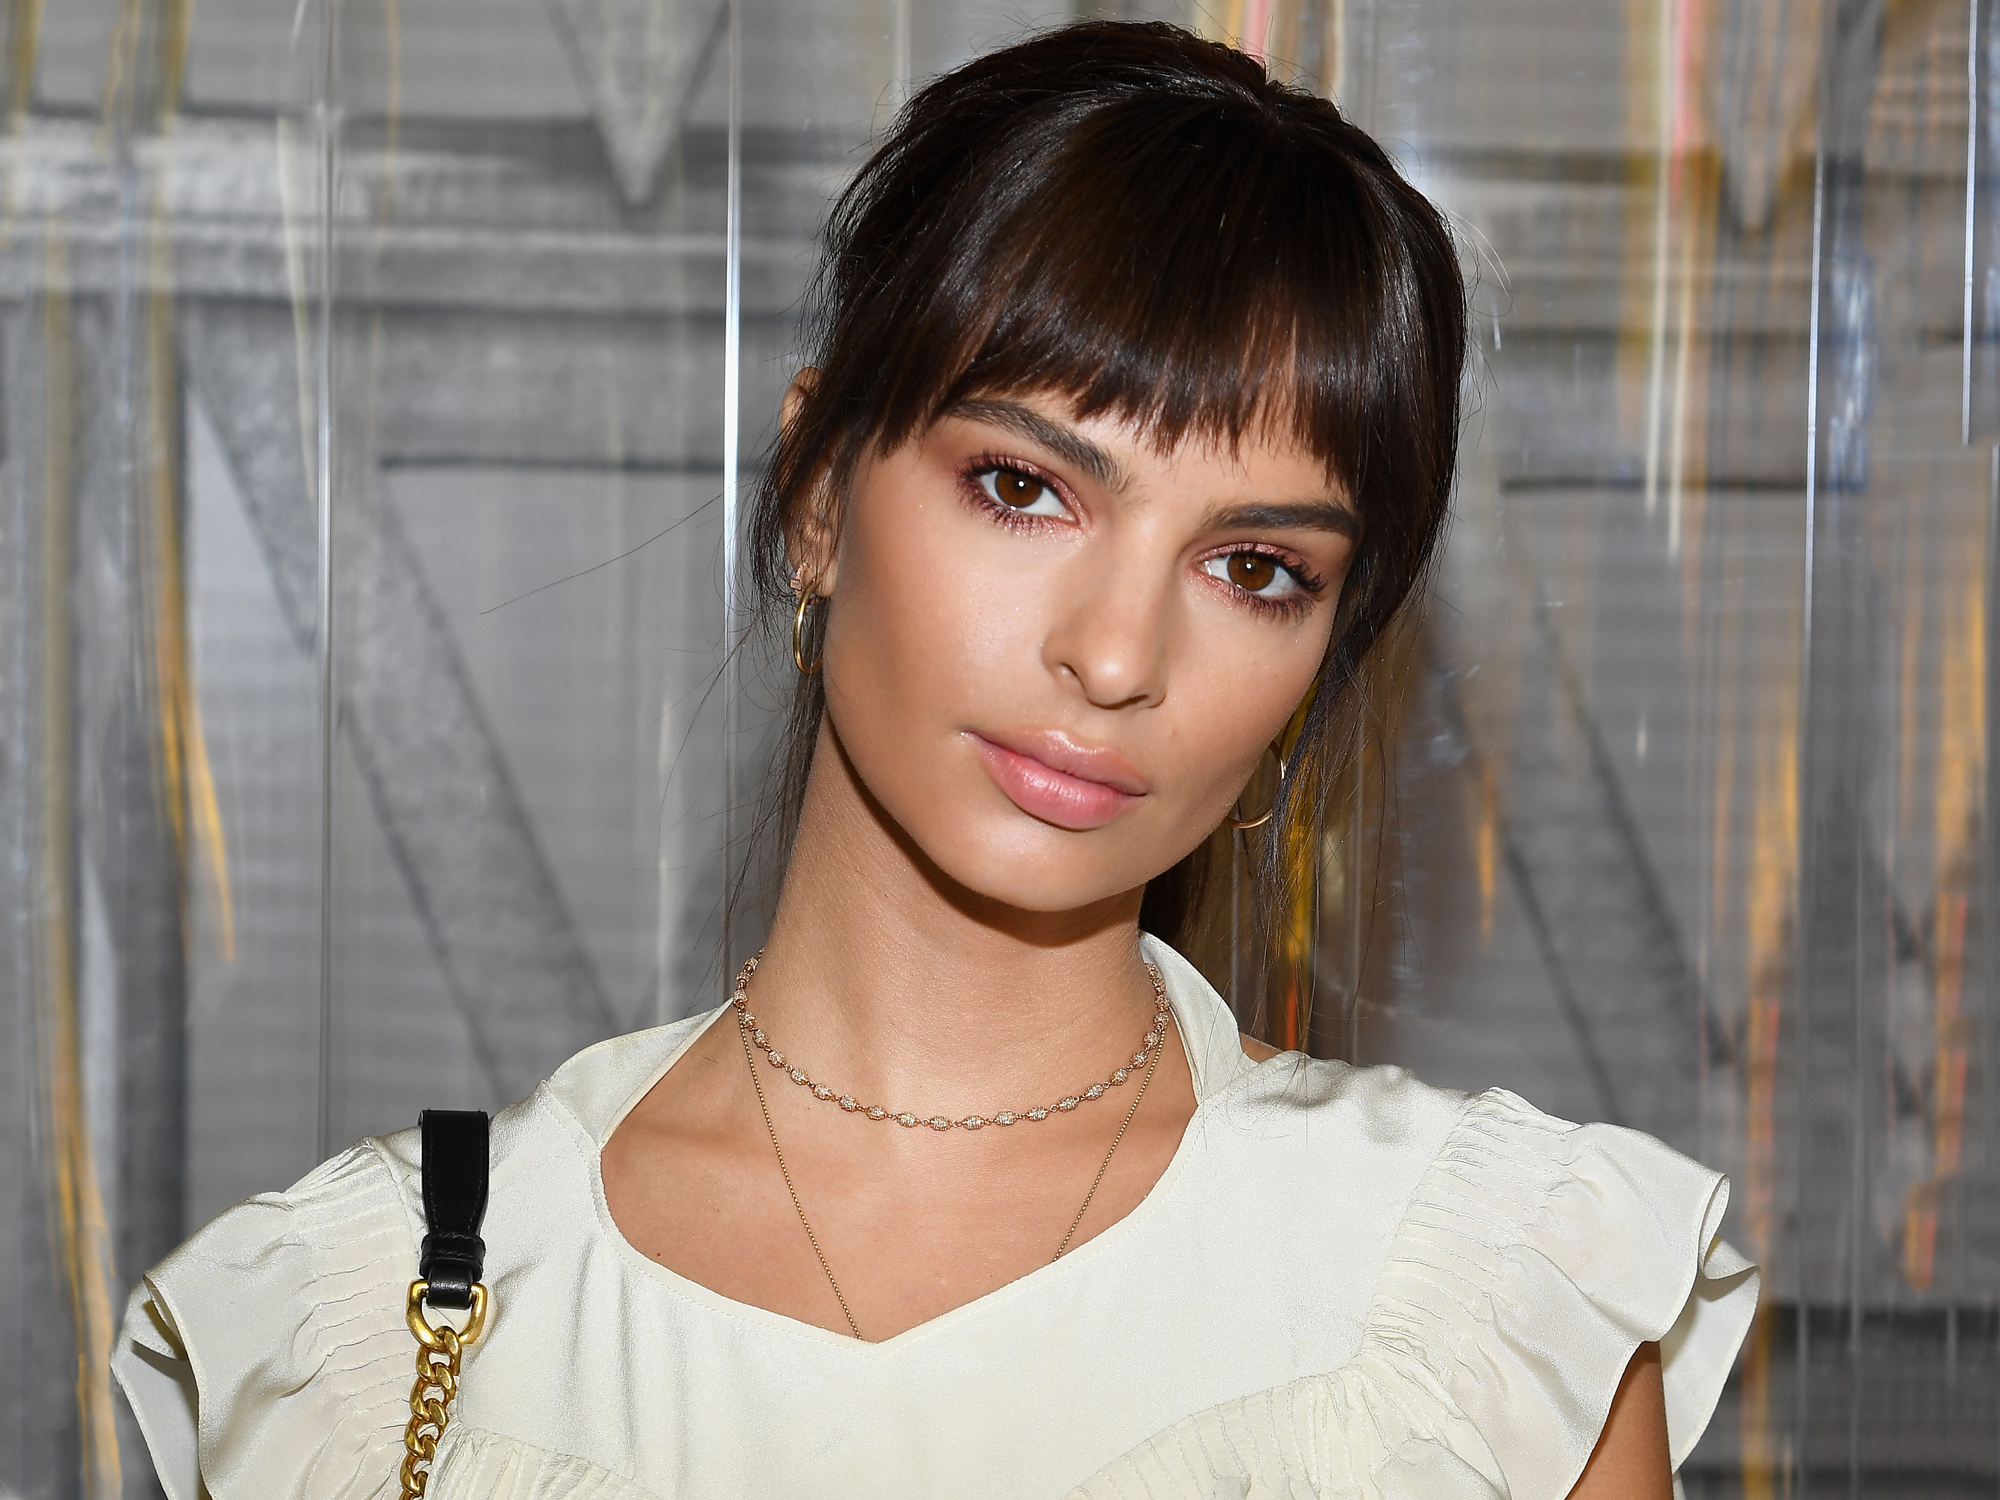 Emily Ratajkowski Says She Was Sexualized at Age 12